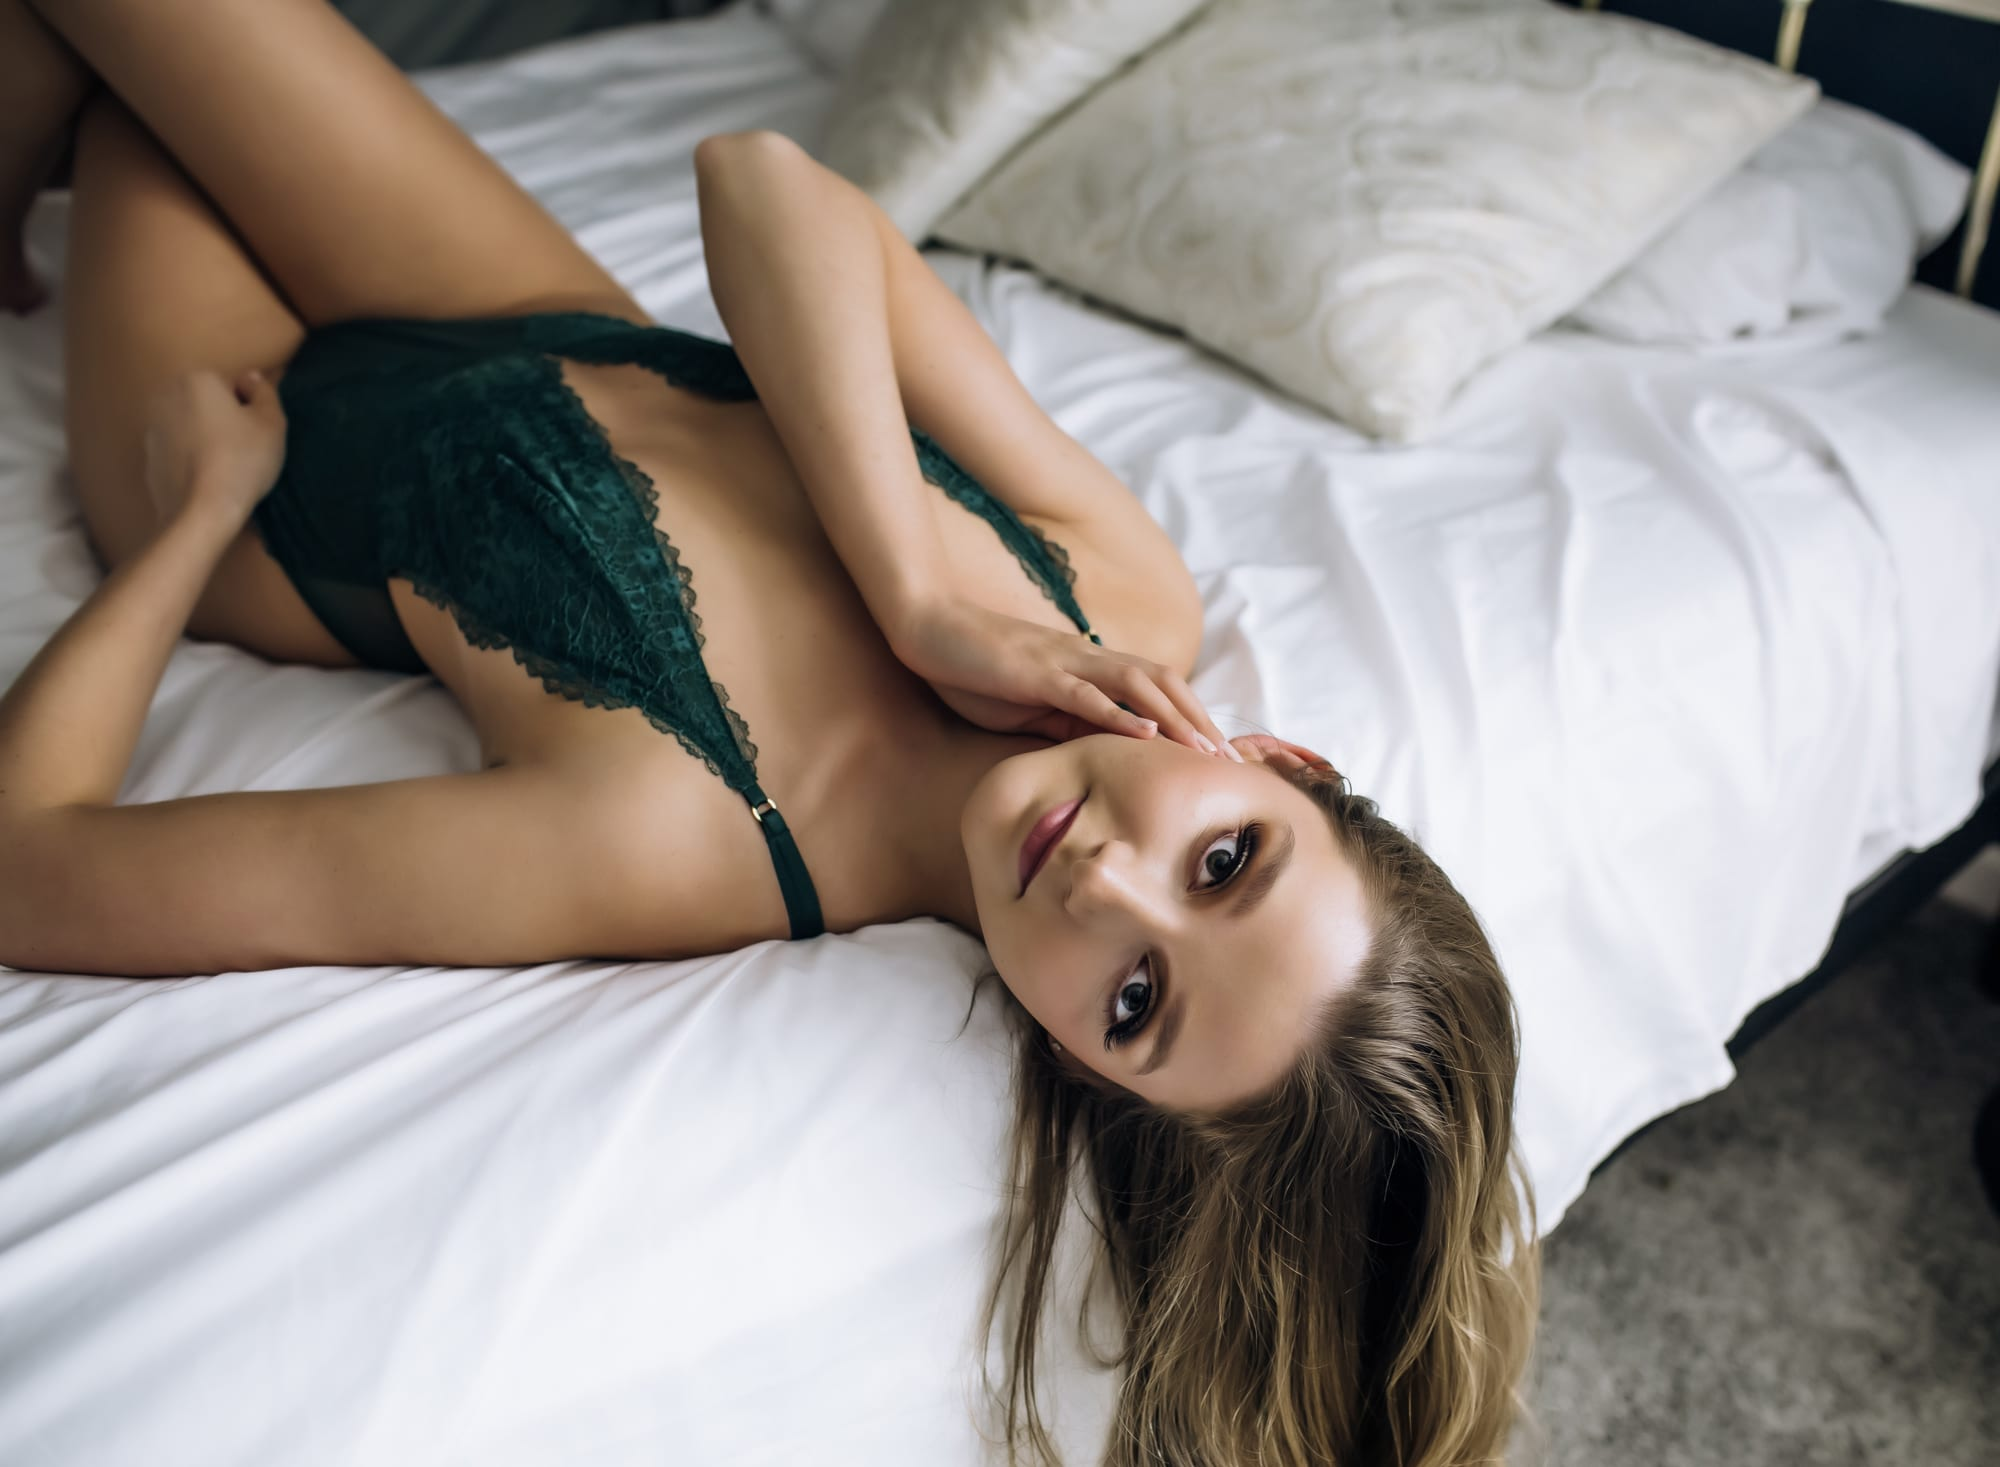 blonde-woman-in-green-bodysuit-laying-on-white-sheets